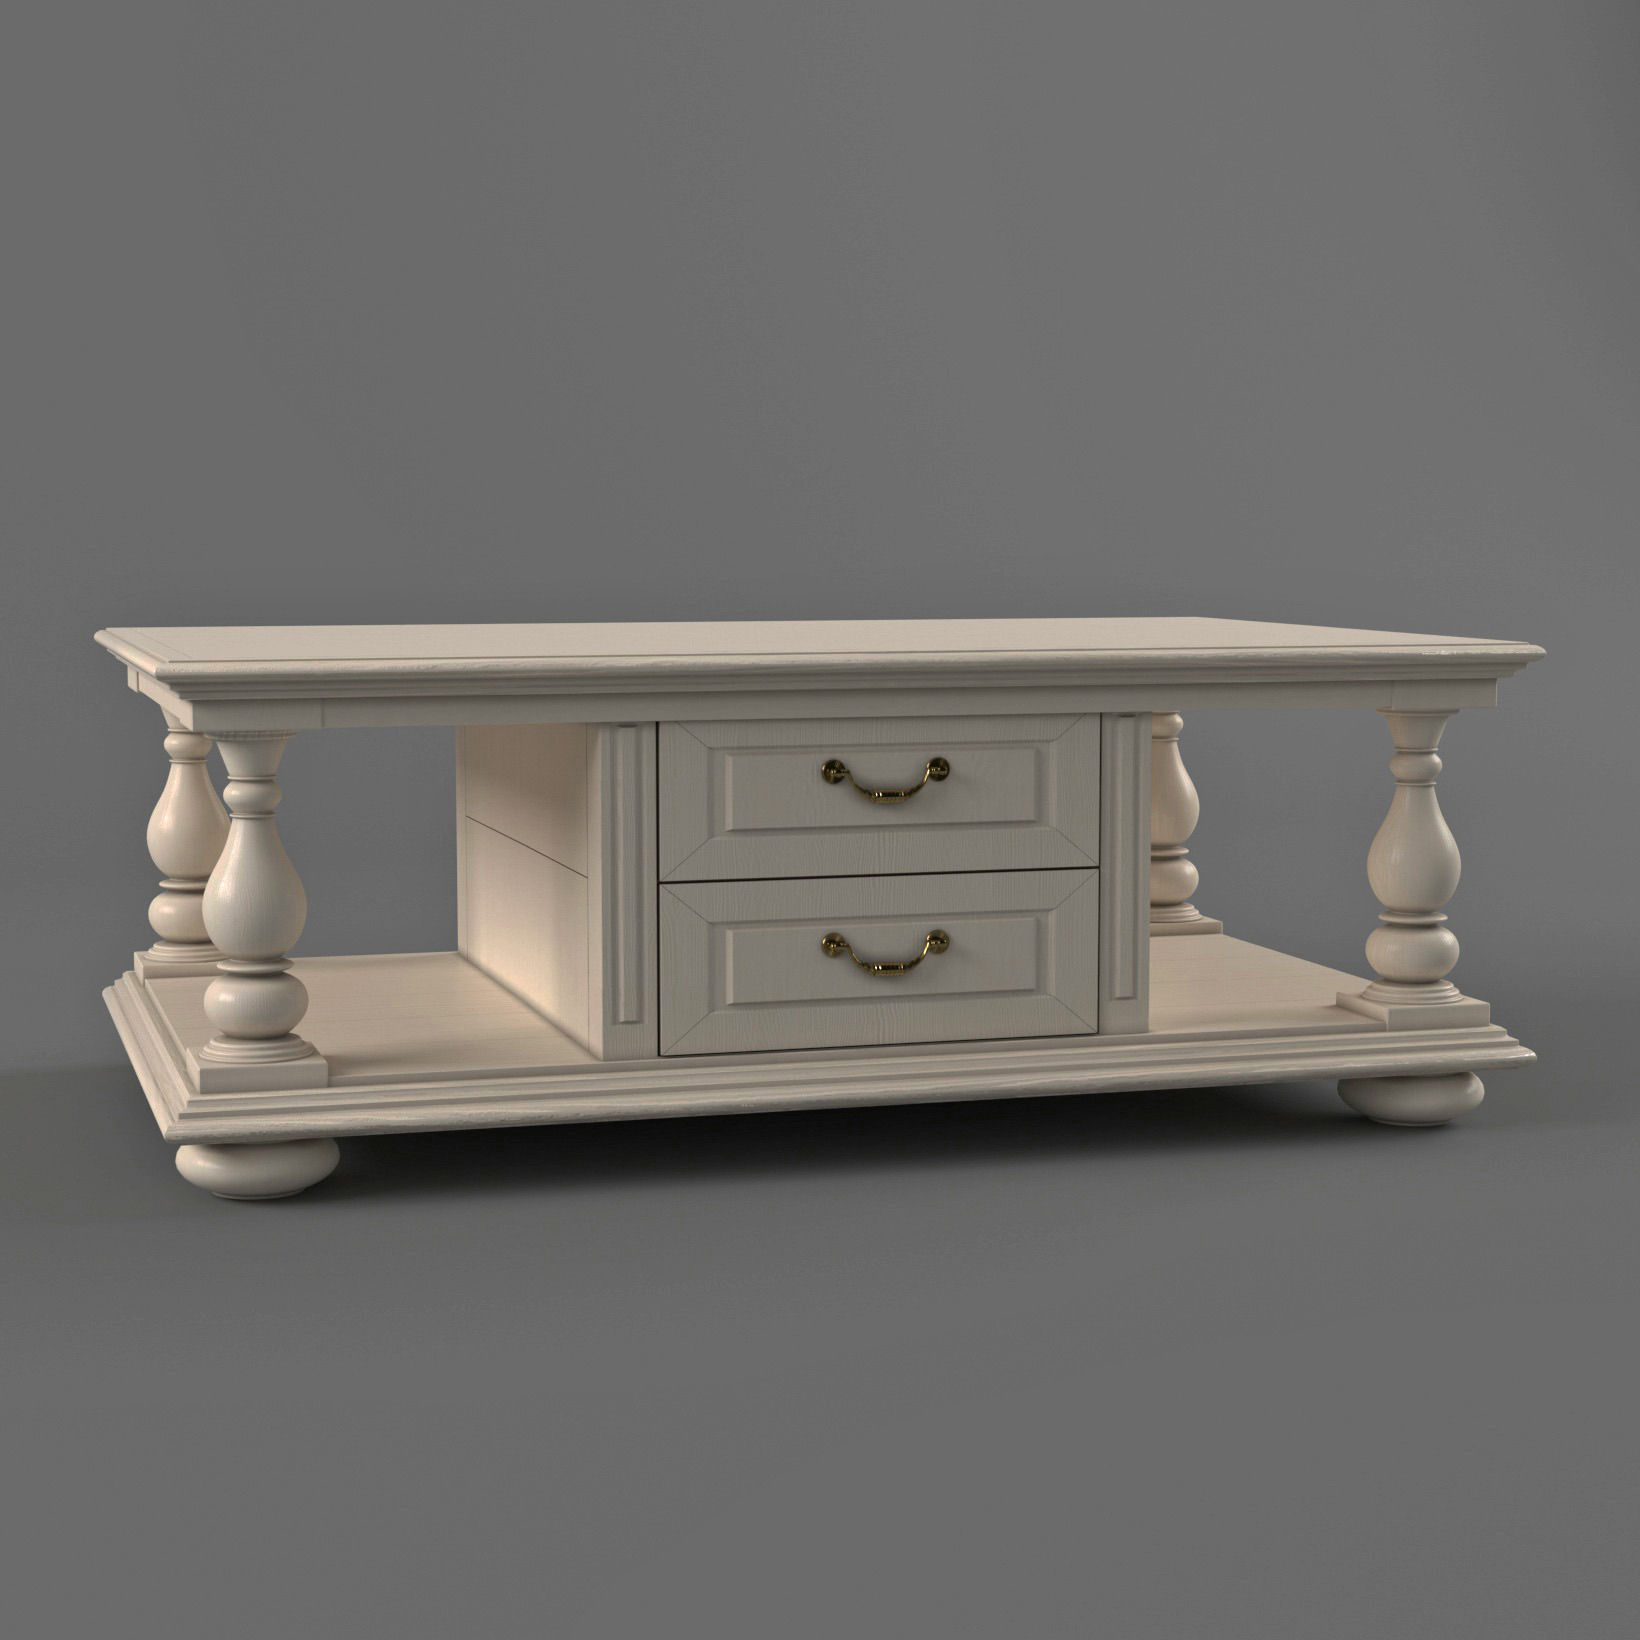 3D model Coffee table in classic style